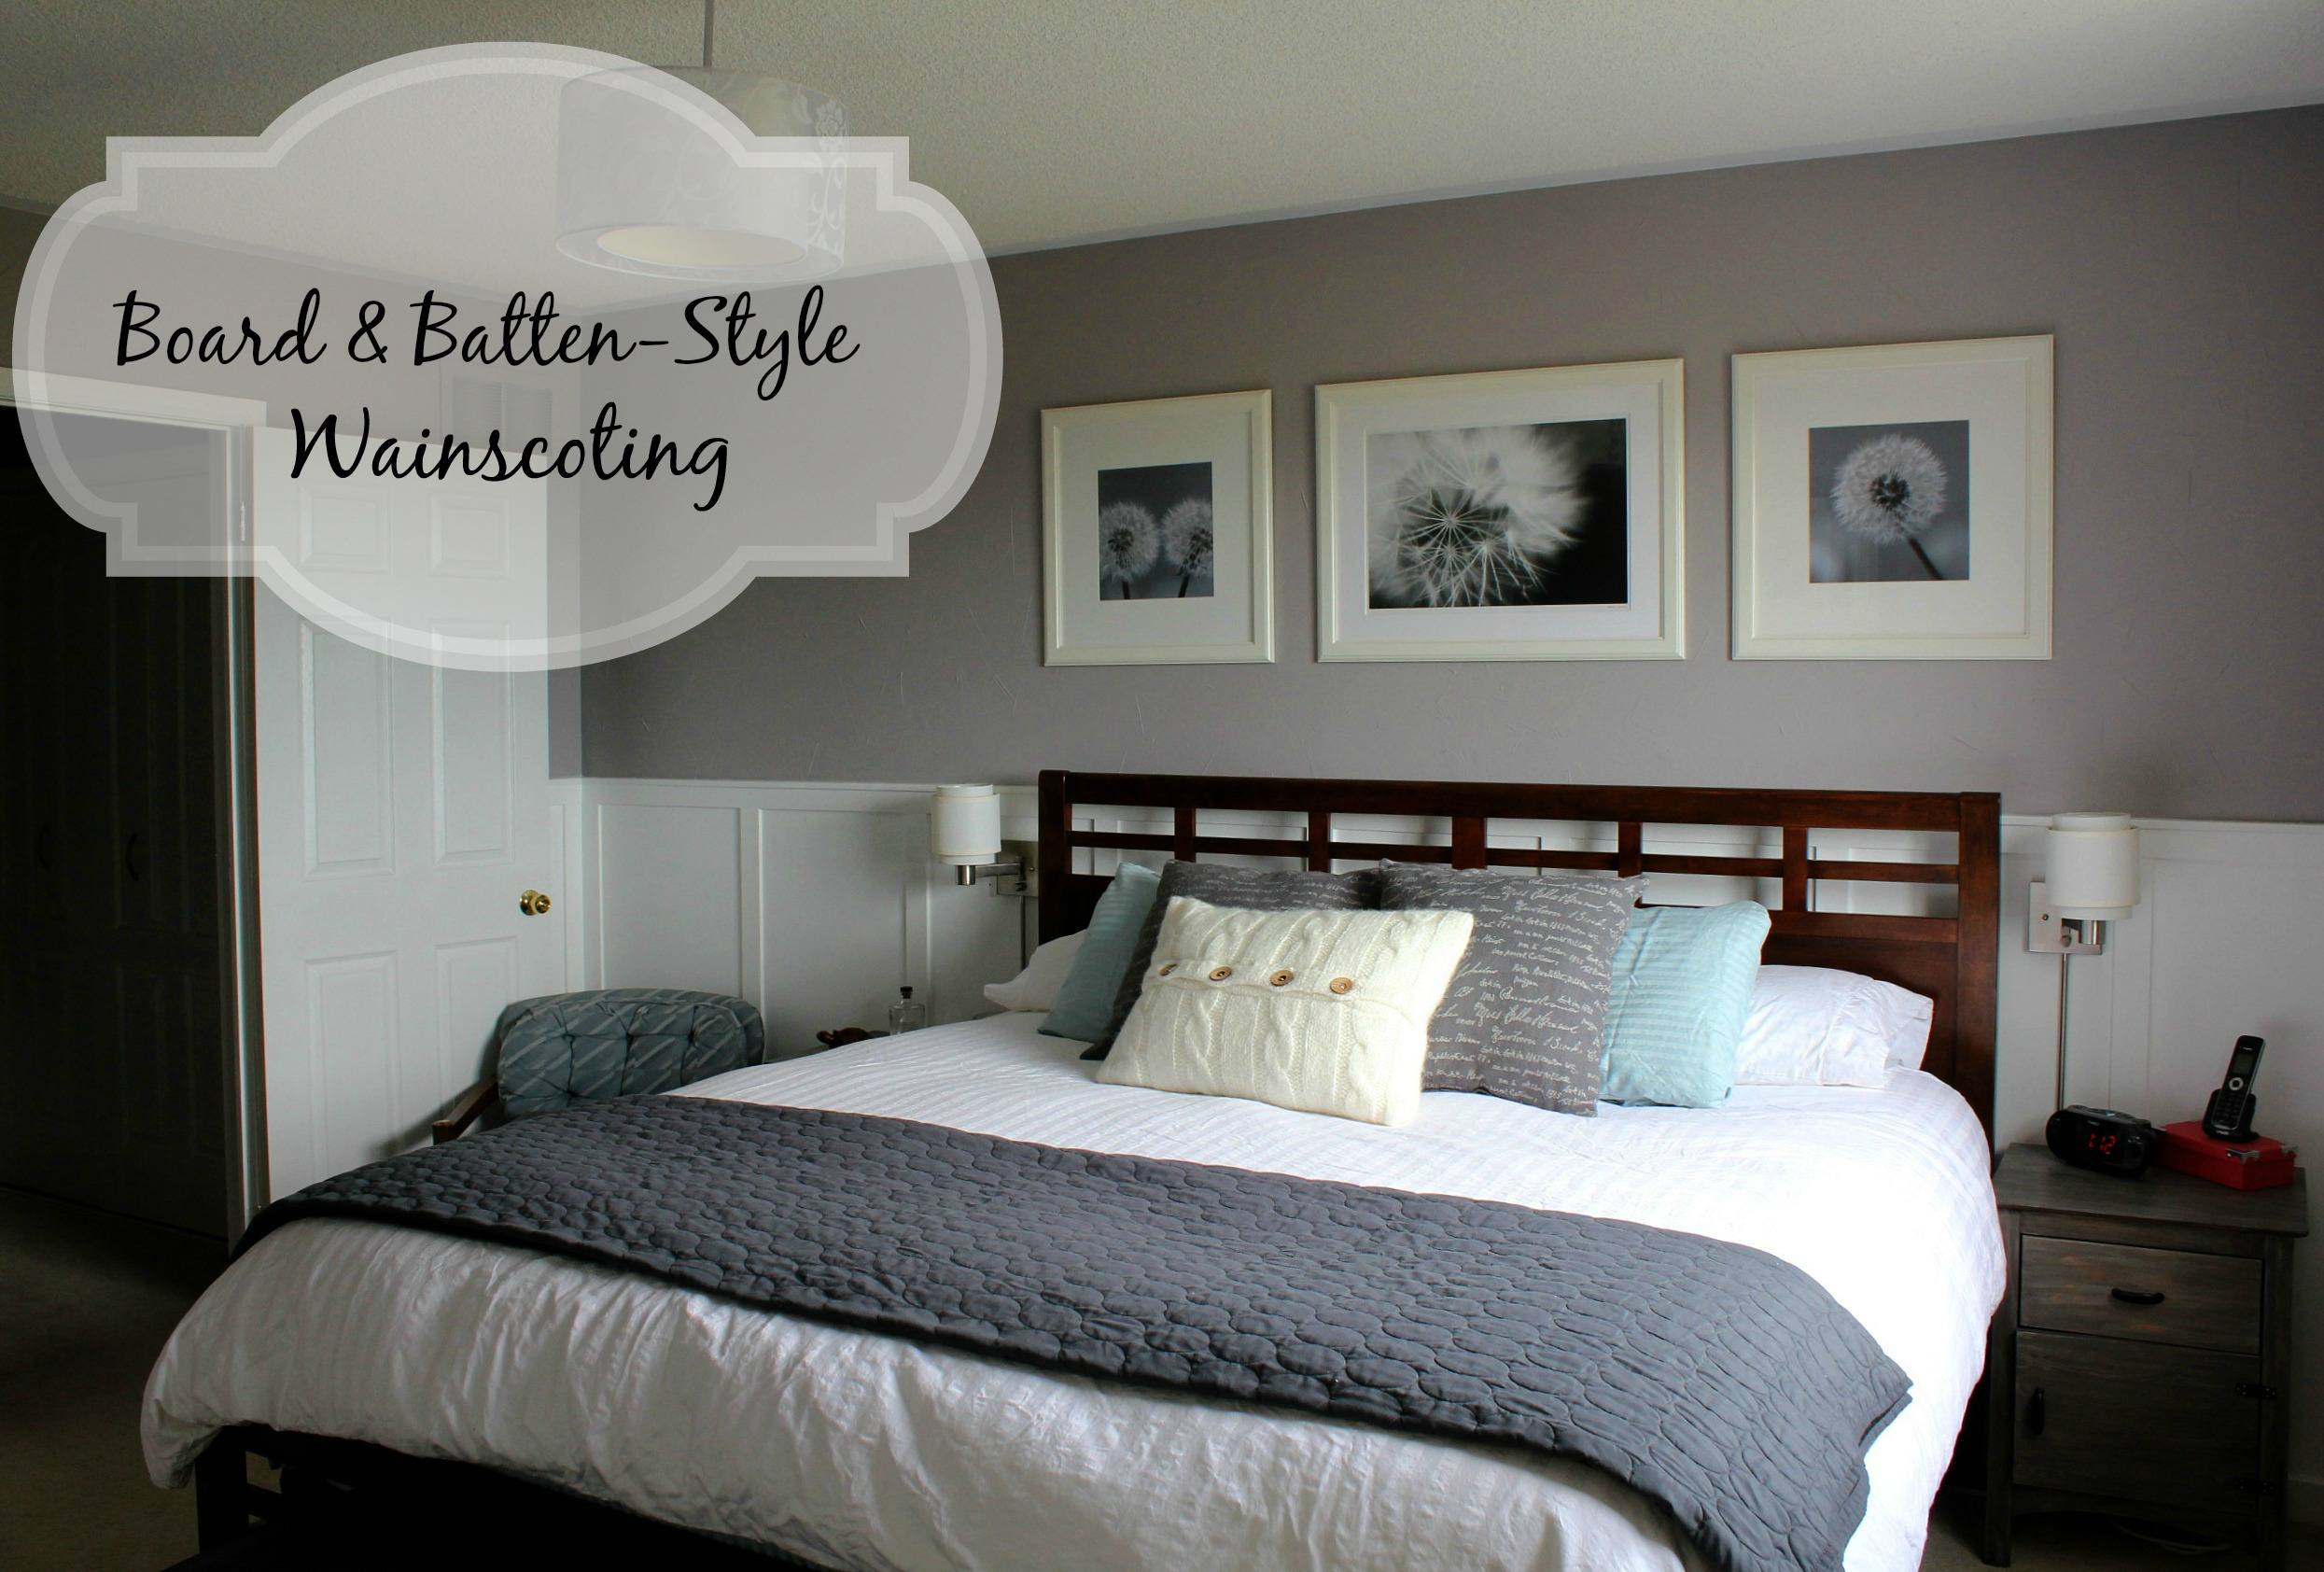 tails upgrade your bedroom with board and batten style wainscoting